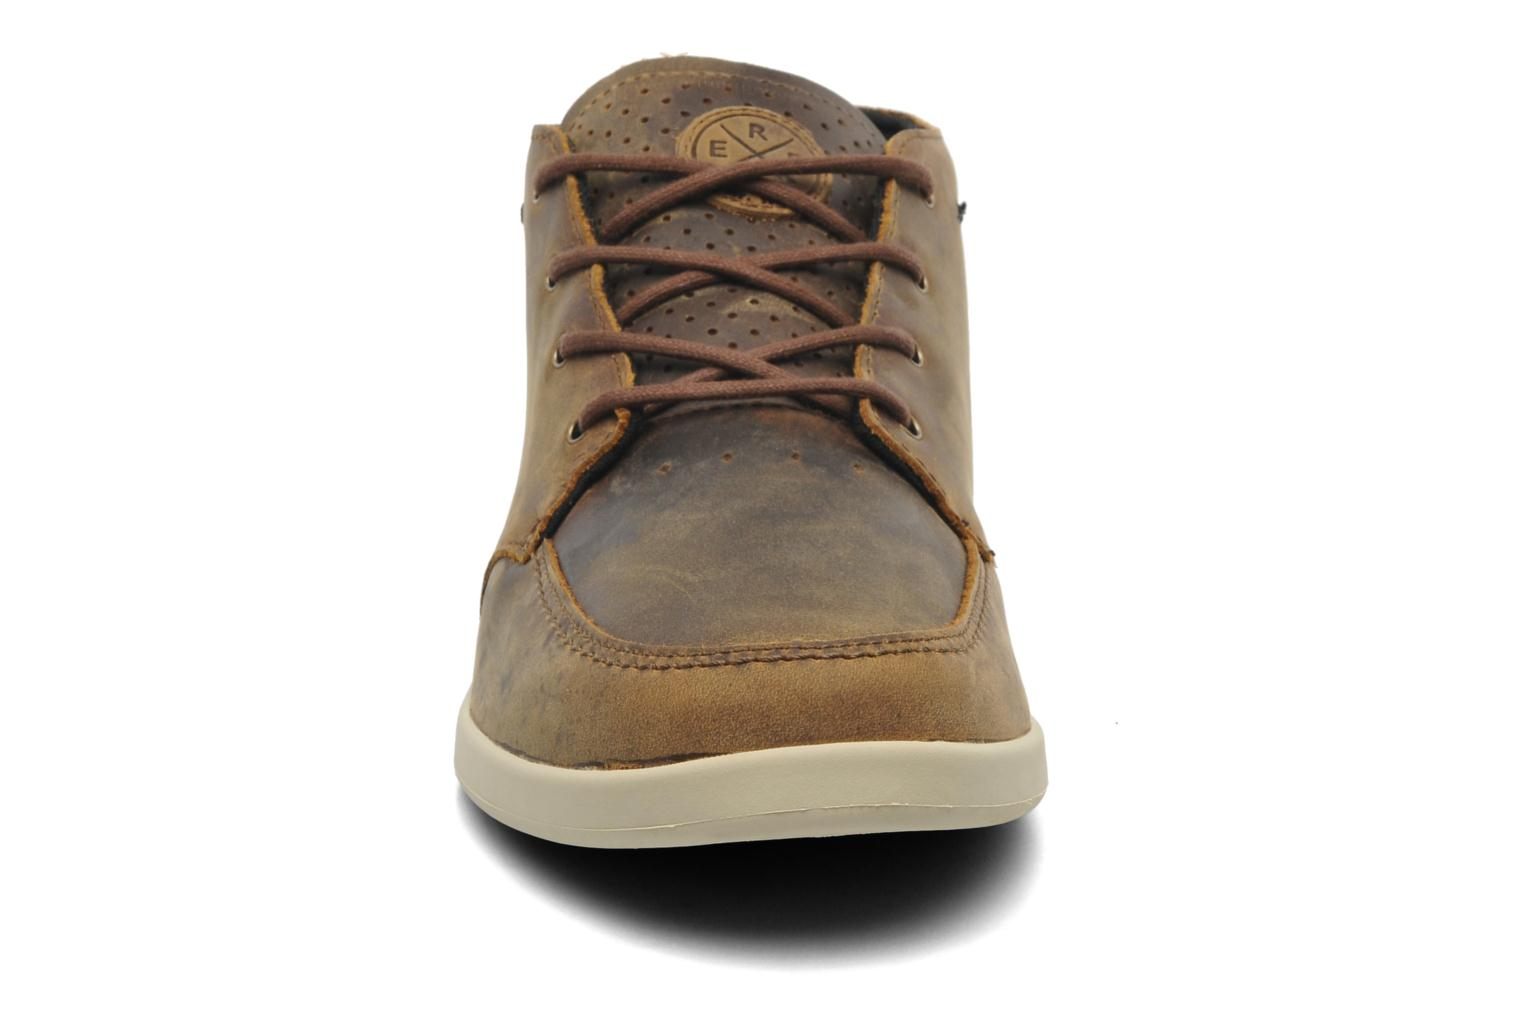 Baskets Reef Reef Spiniker Mid NB Marron vue portées chaussures